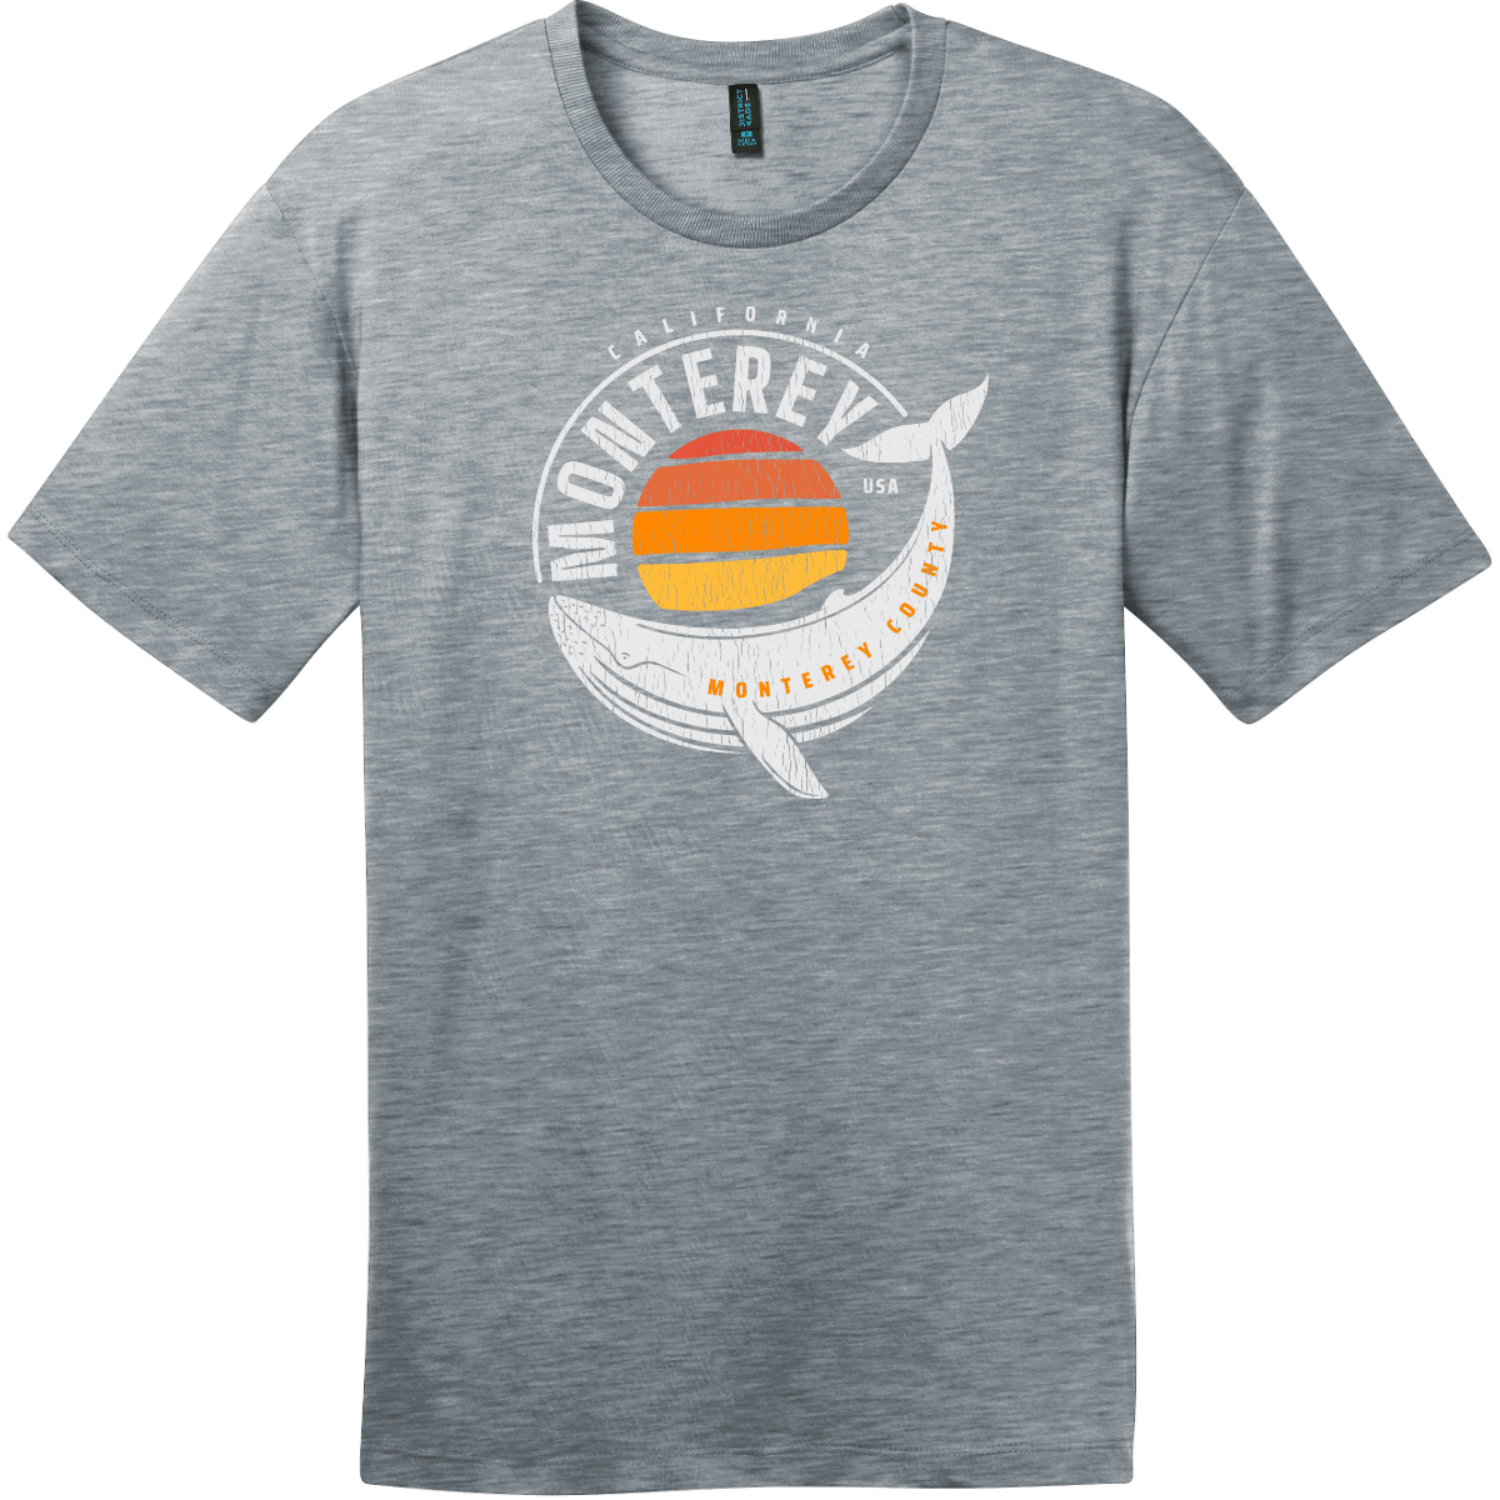 Monterey California Whale T-Shirt Heathered Steel District Perfect Weight Tee DT104